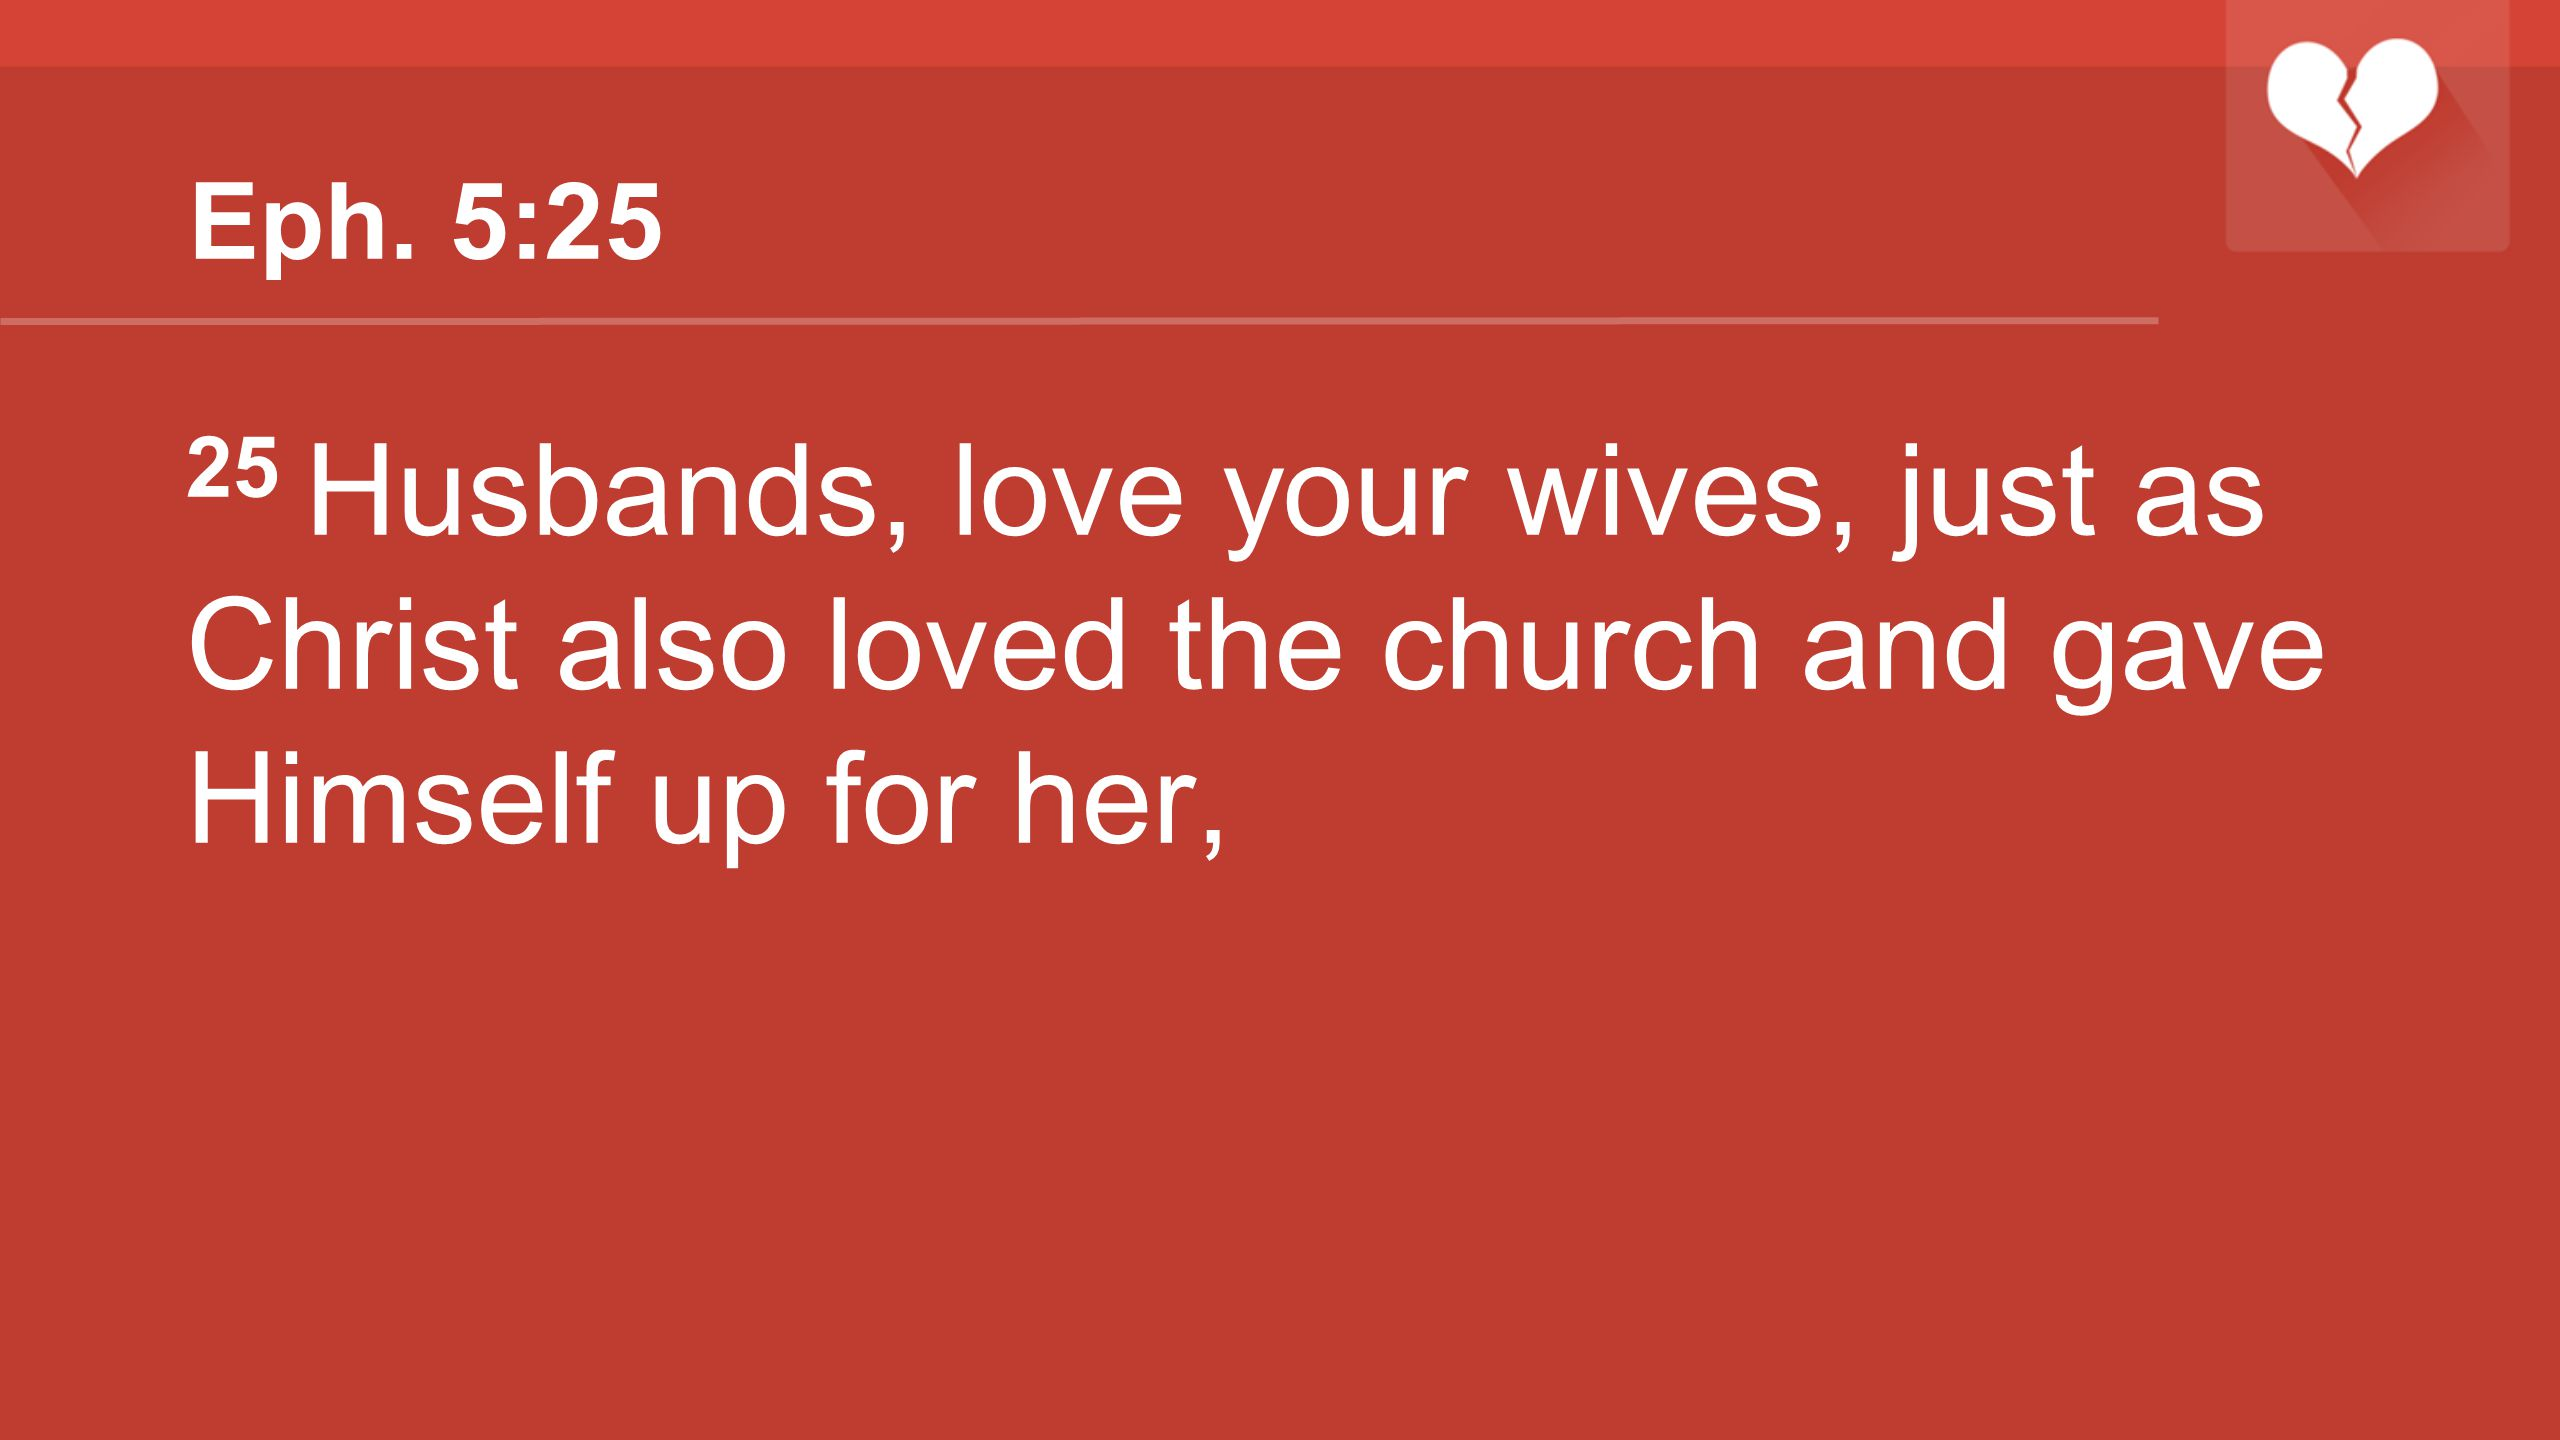 Eph. 5:25 25 Husbands, love your wives, just as Christ also loved the church and gave Himself up for her,